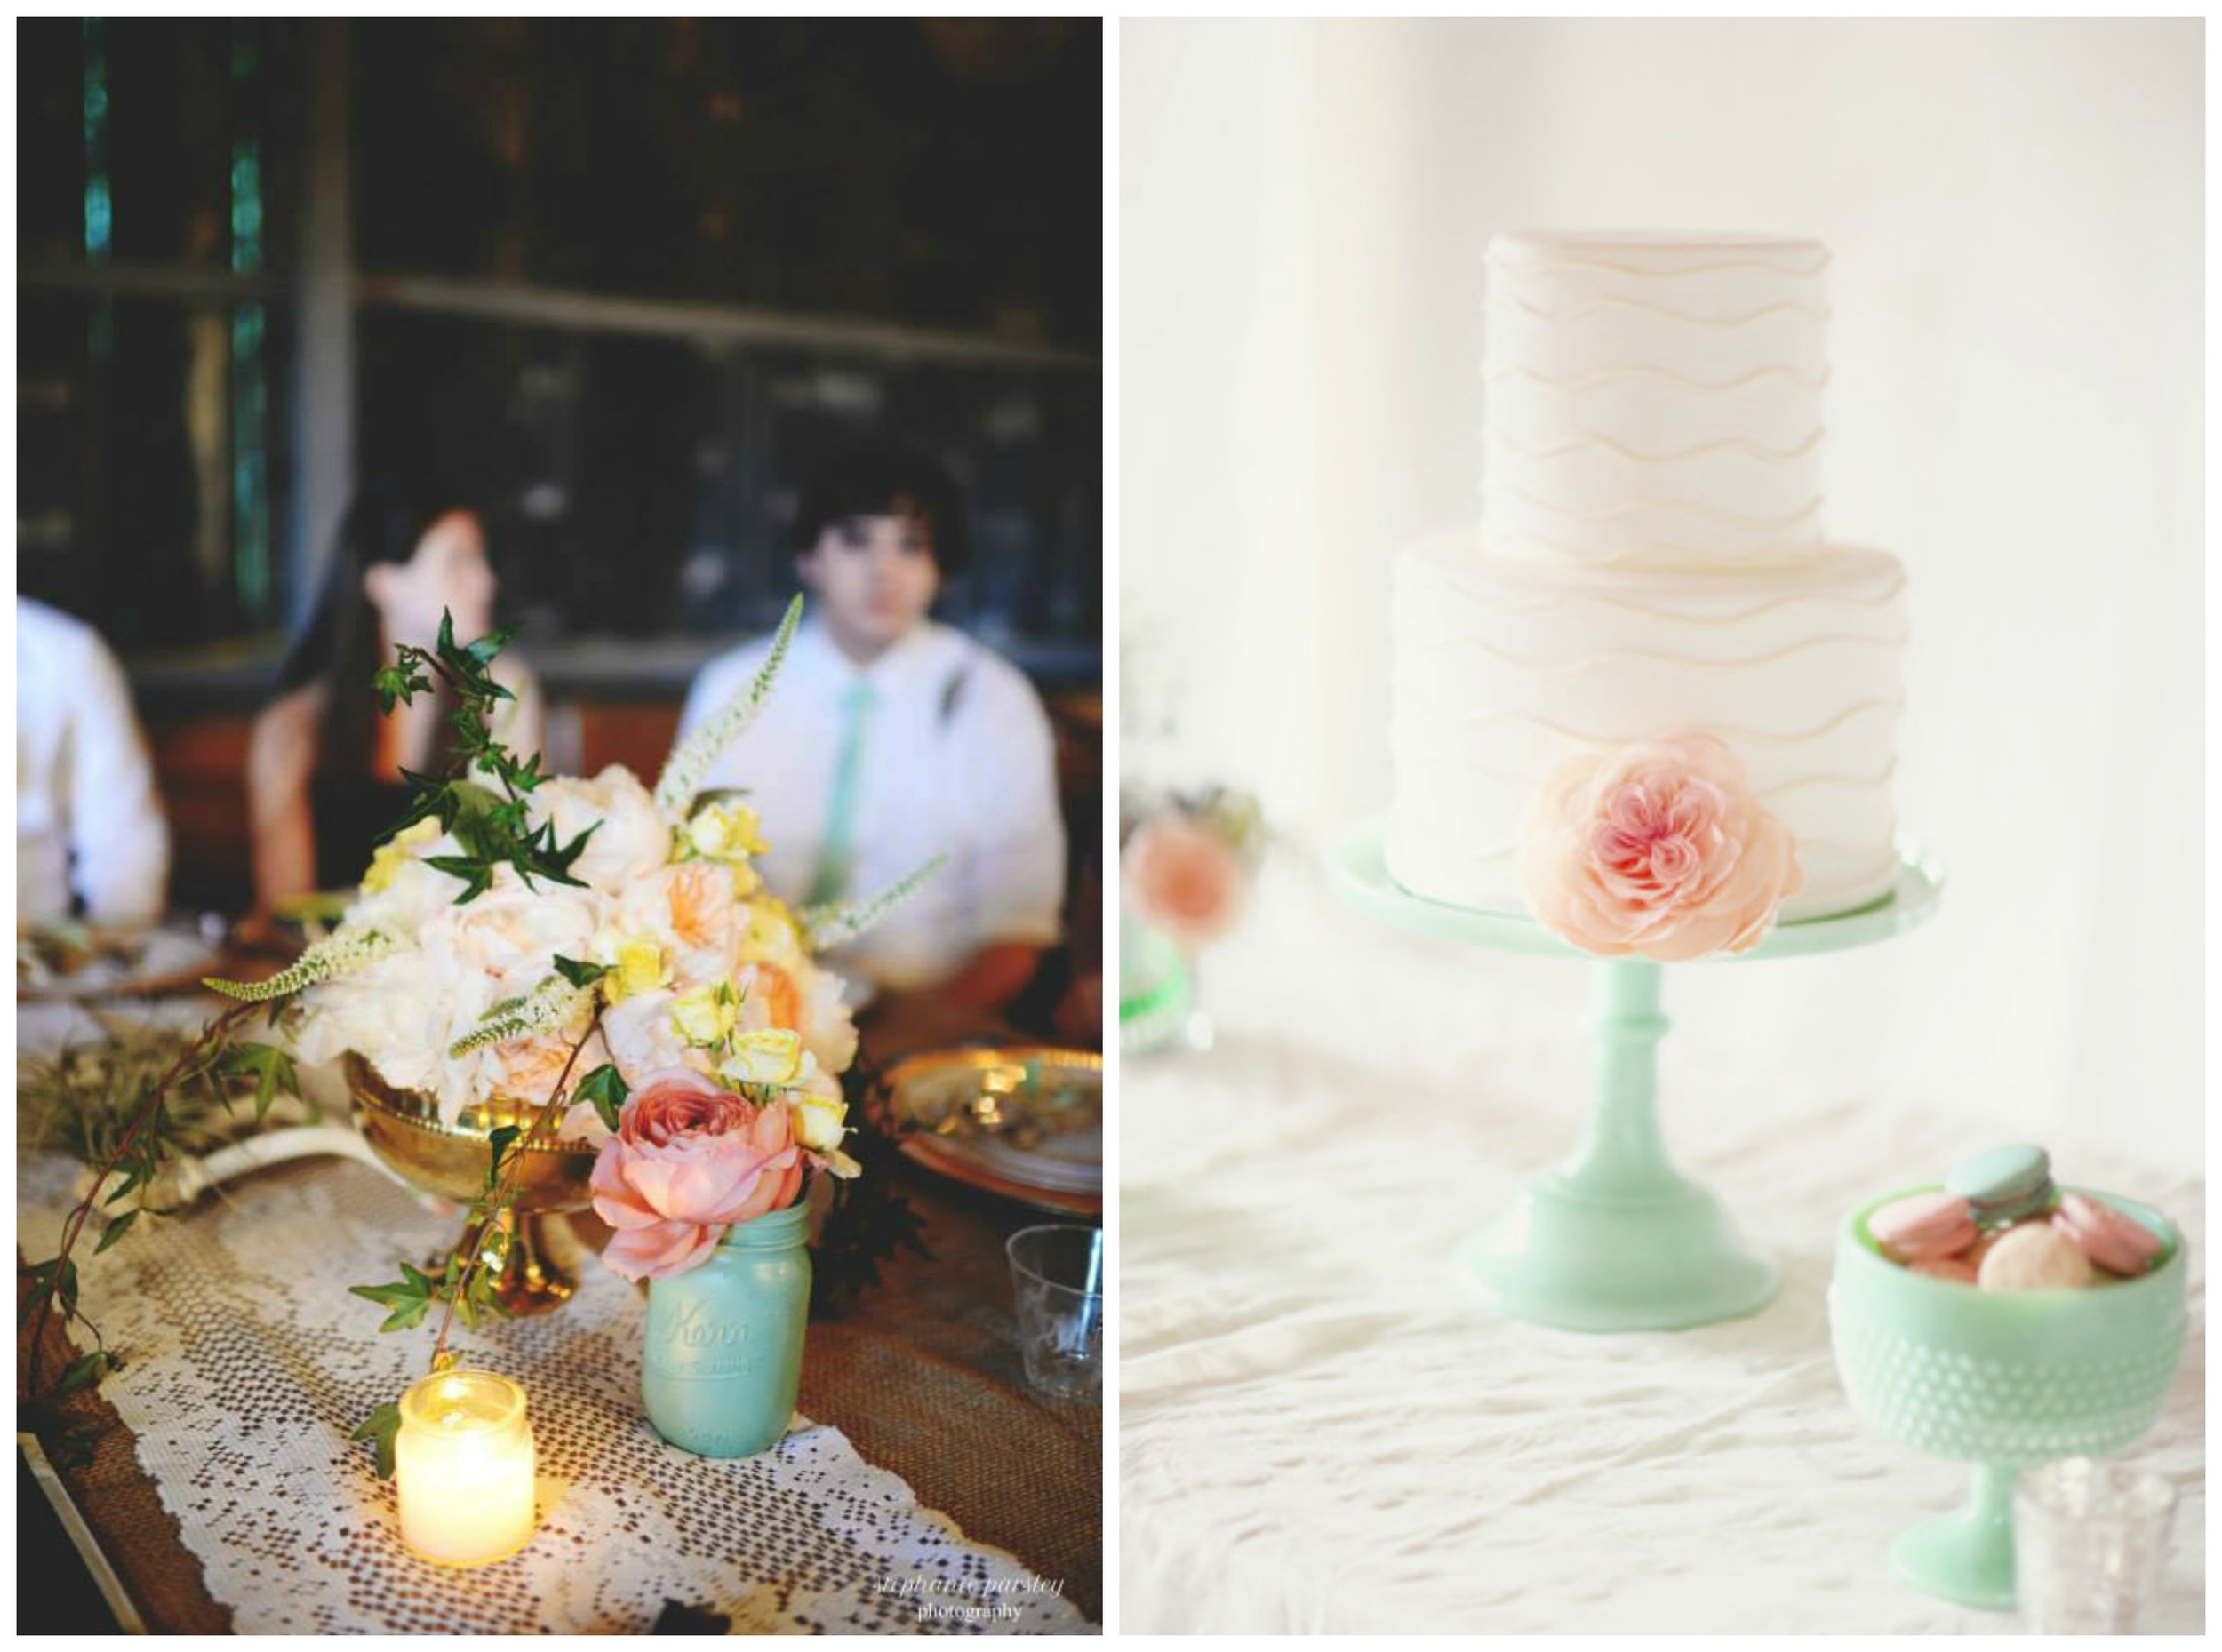 Stephanie Parsley , from  Samantha + Danny 's wedding at The Barn;  Style Me Pretty